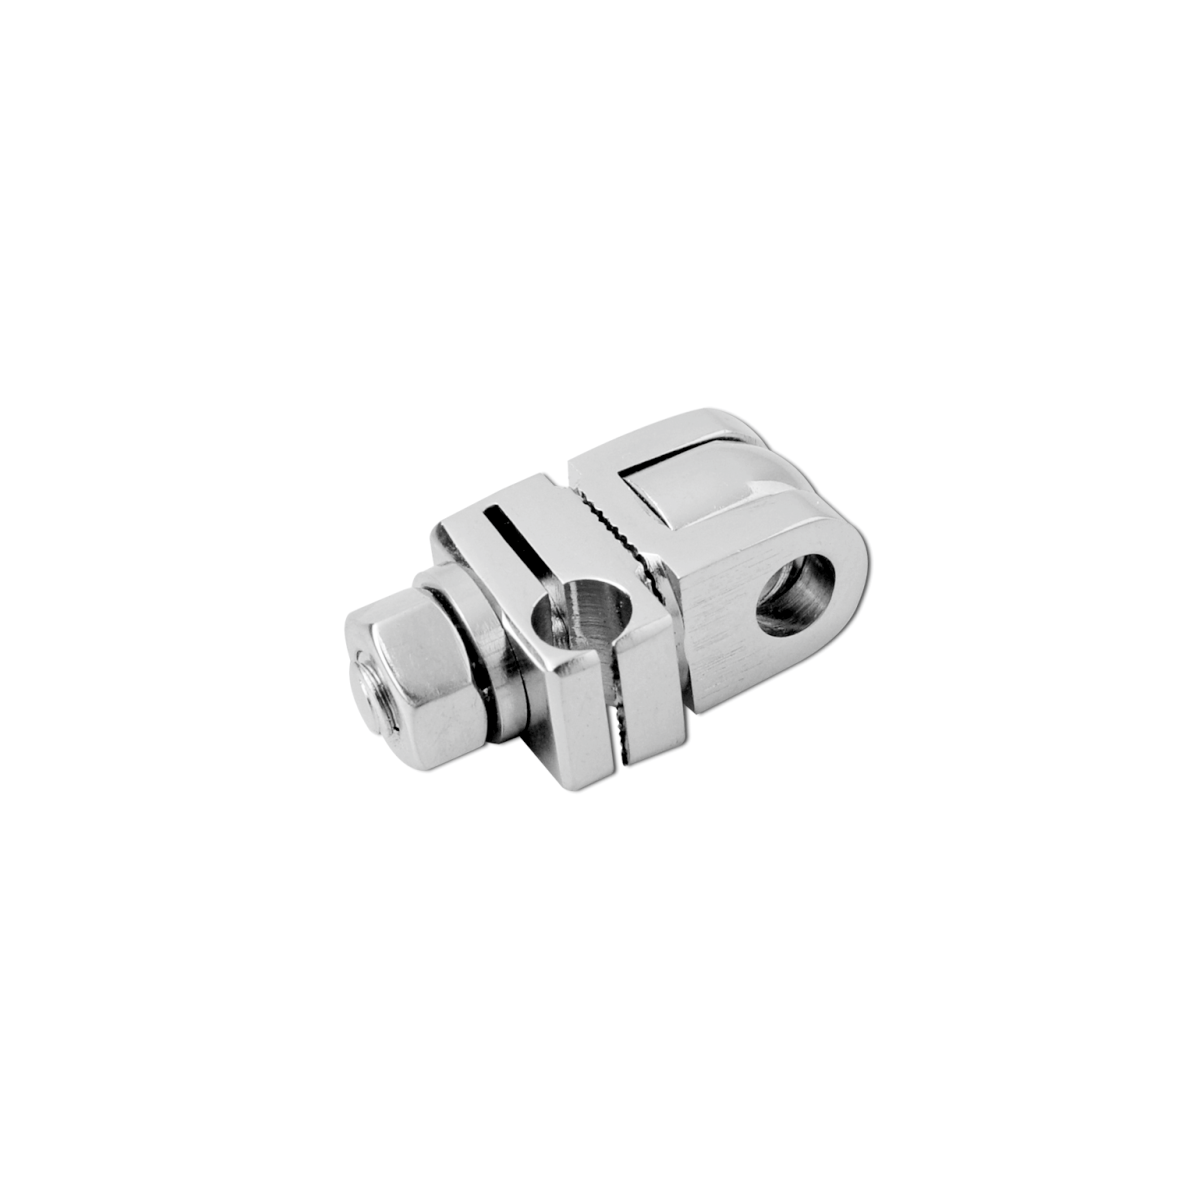 Small Single Pin Clamp 4.0mm x 2.5mm